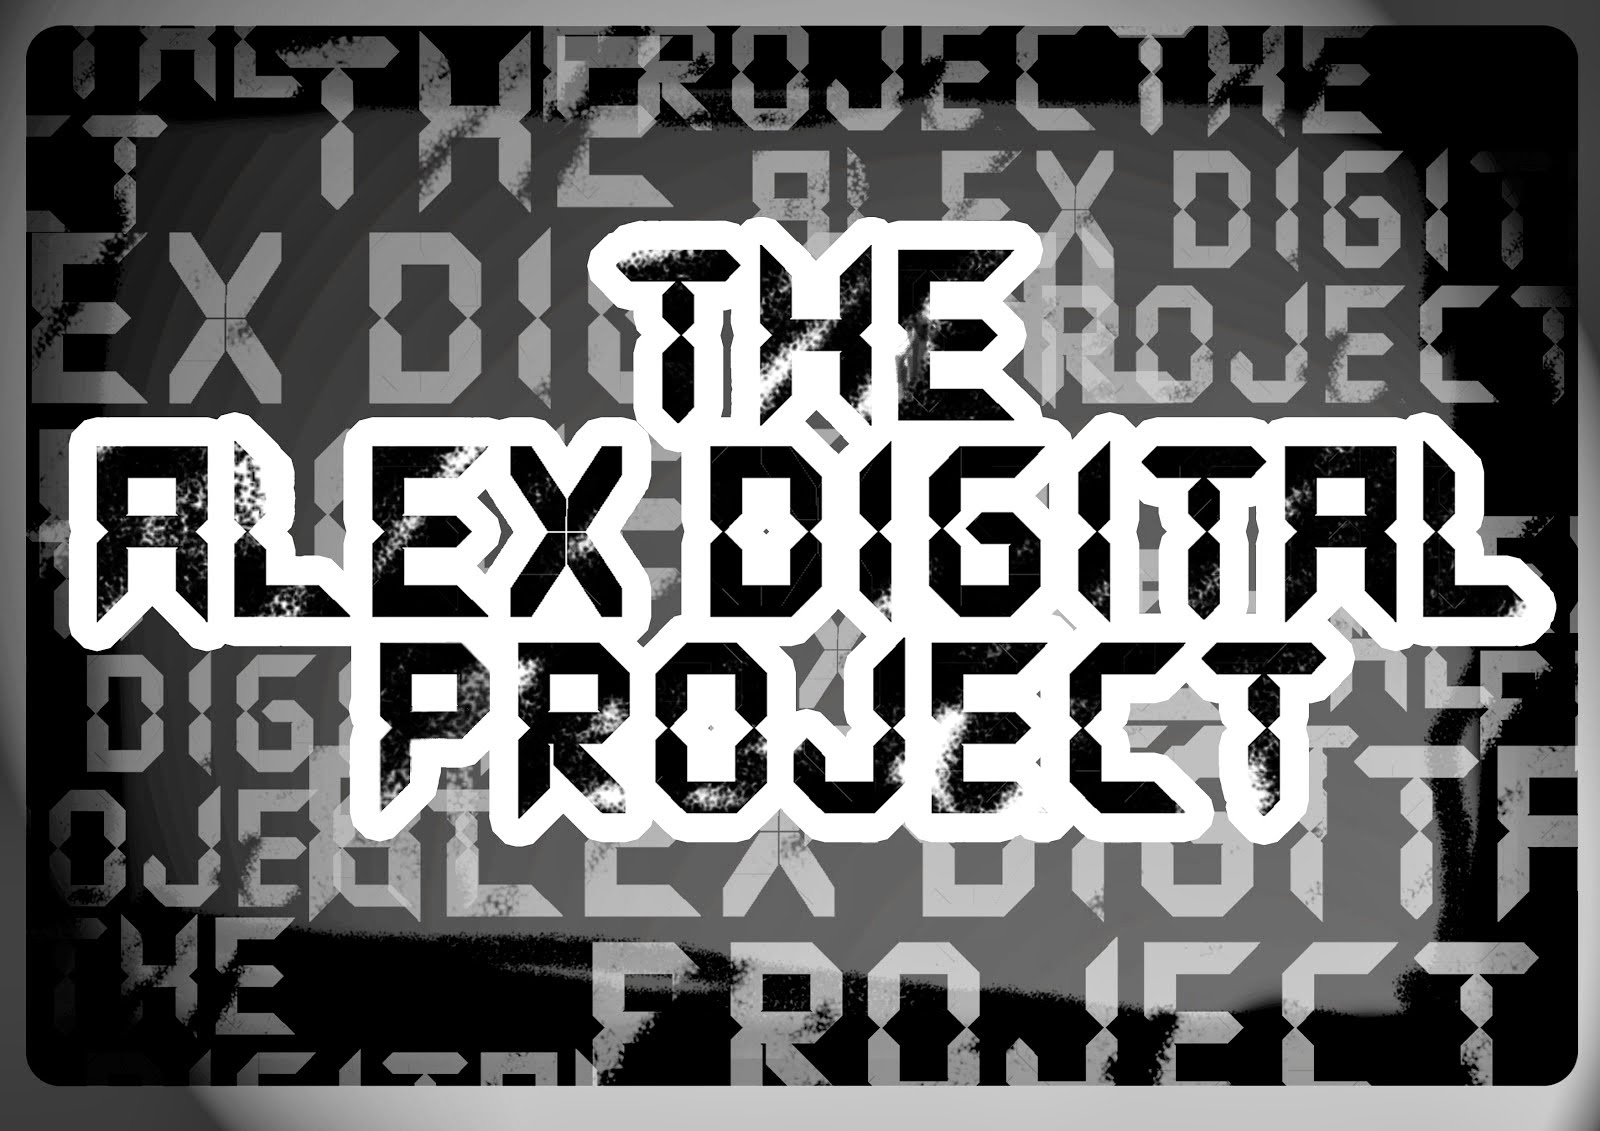 The Alex Digital Project